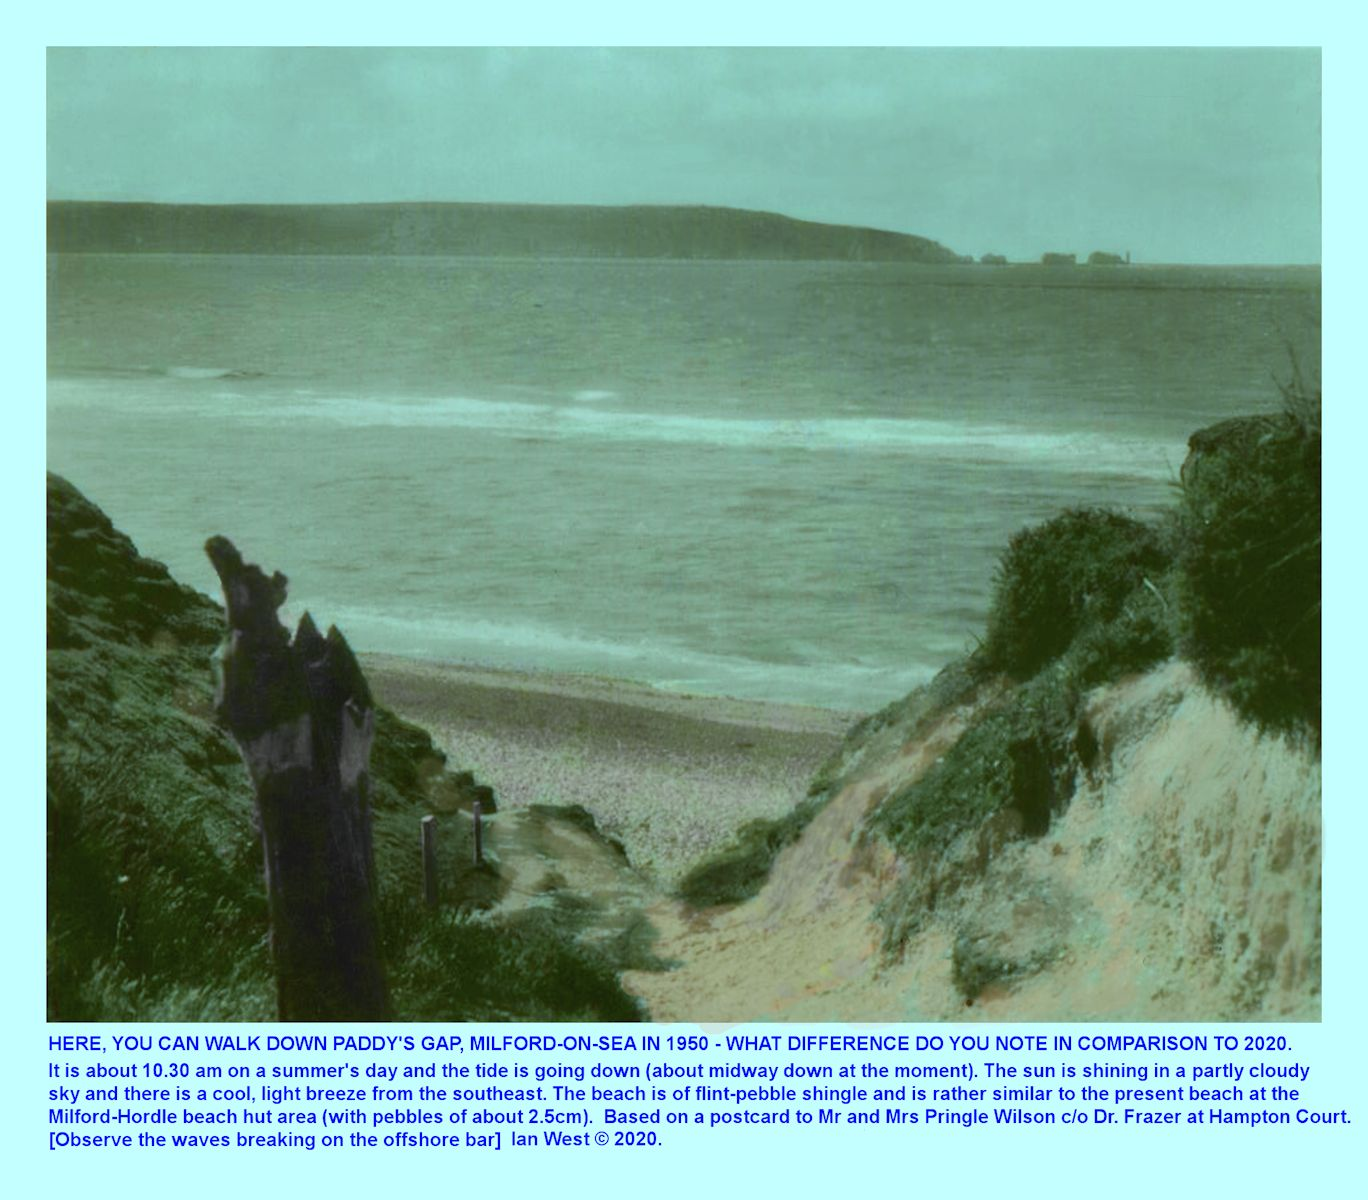 Paddys Gap, access to the pebble beach, at Milford-on-Sea. as seen in the 1950s and showing the fairly wide,  pebble beach which exited there at that time, rather than the concrete and rock armour which now replaces it, Ian West